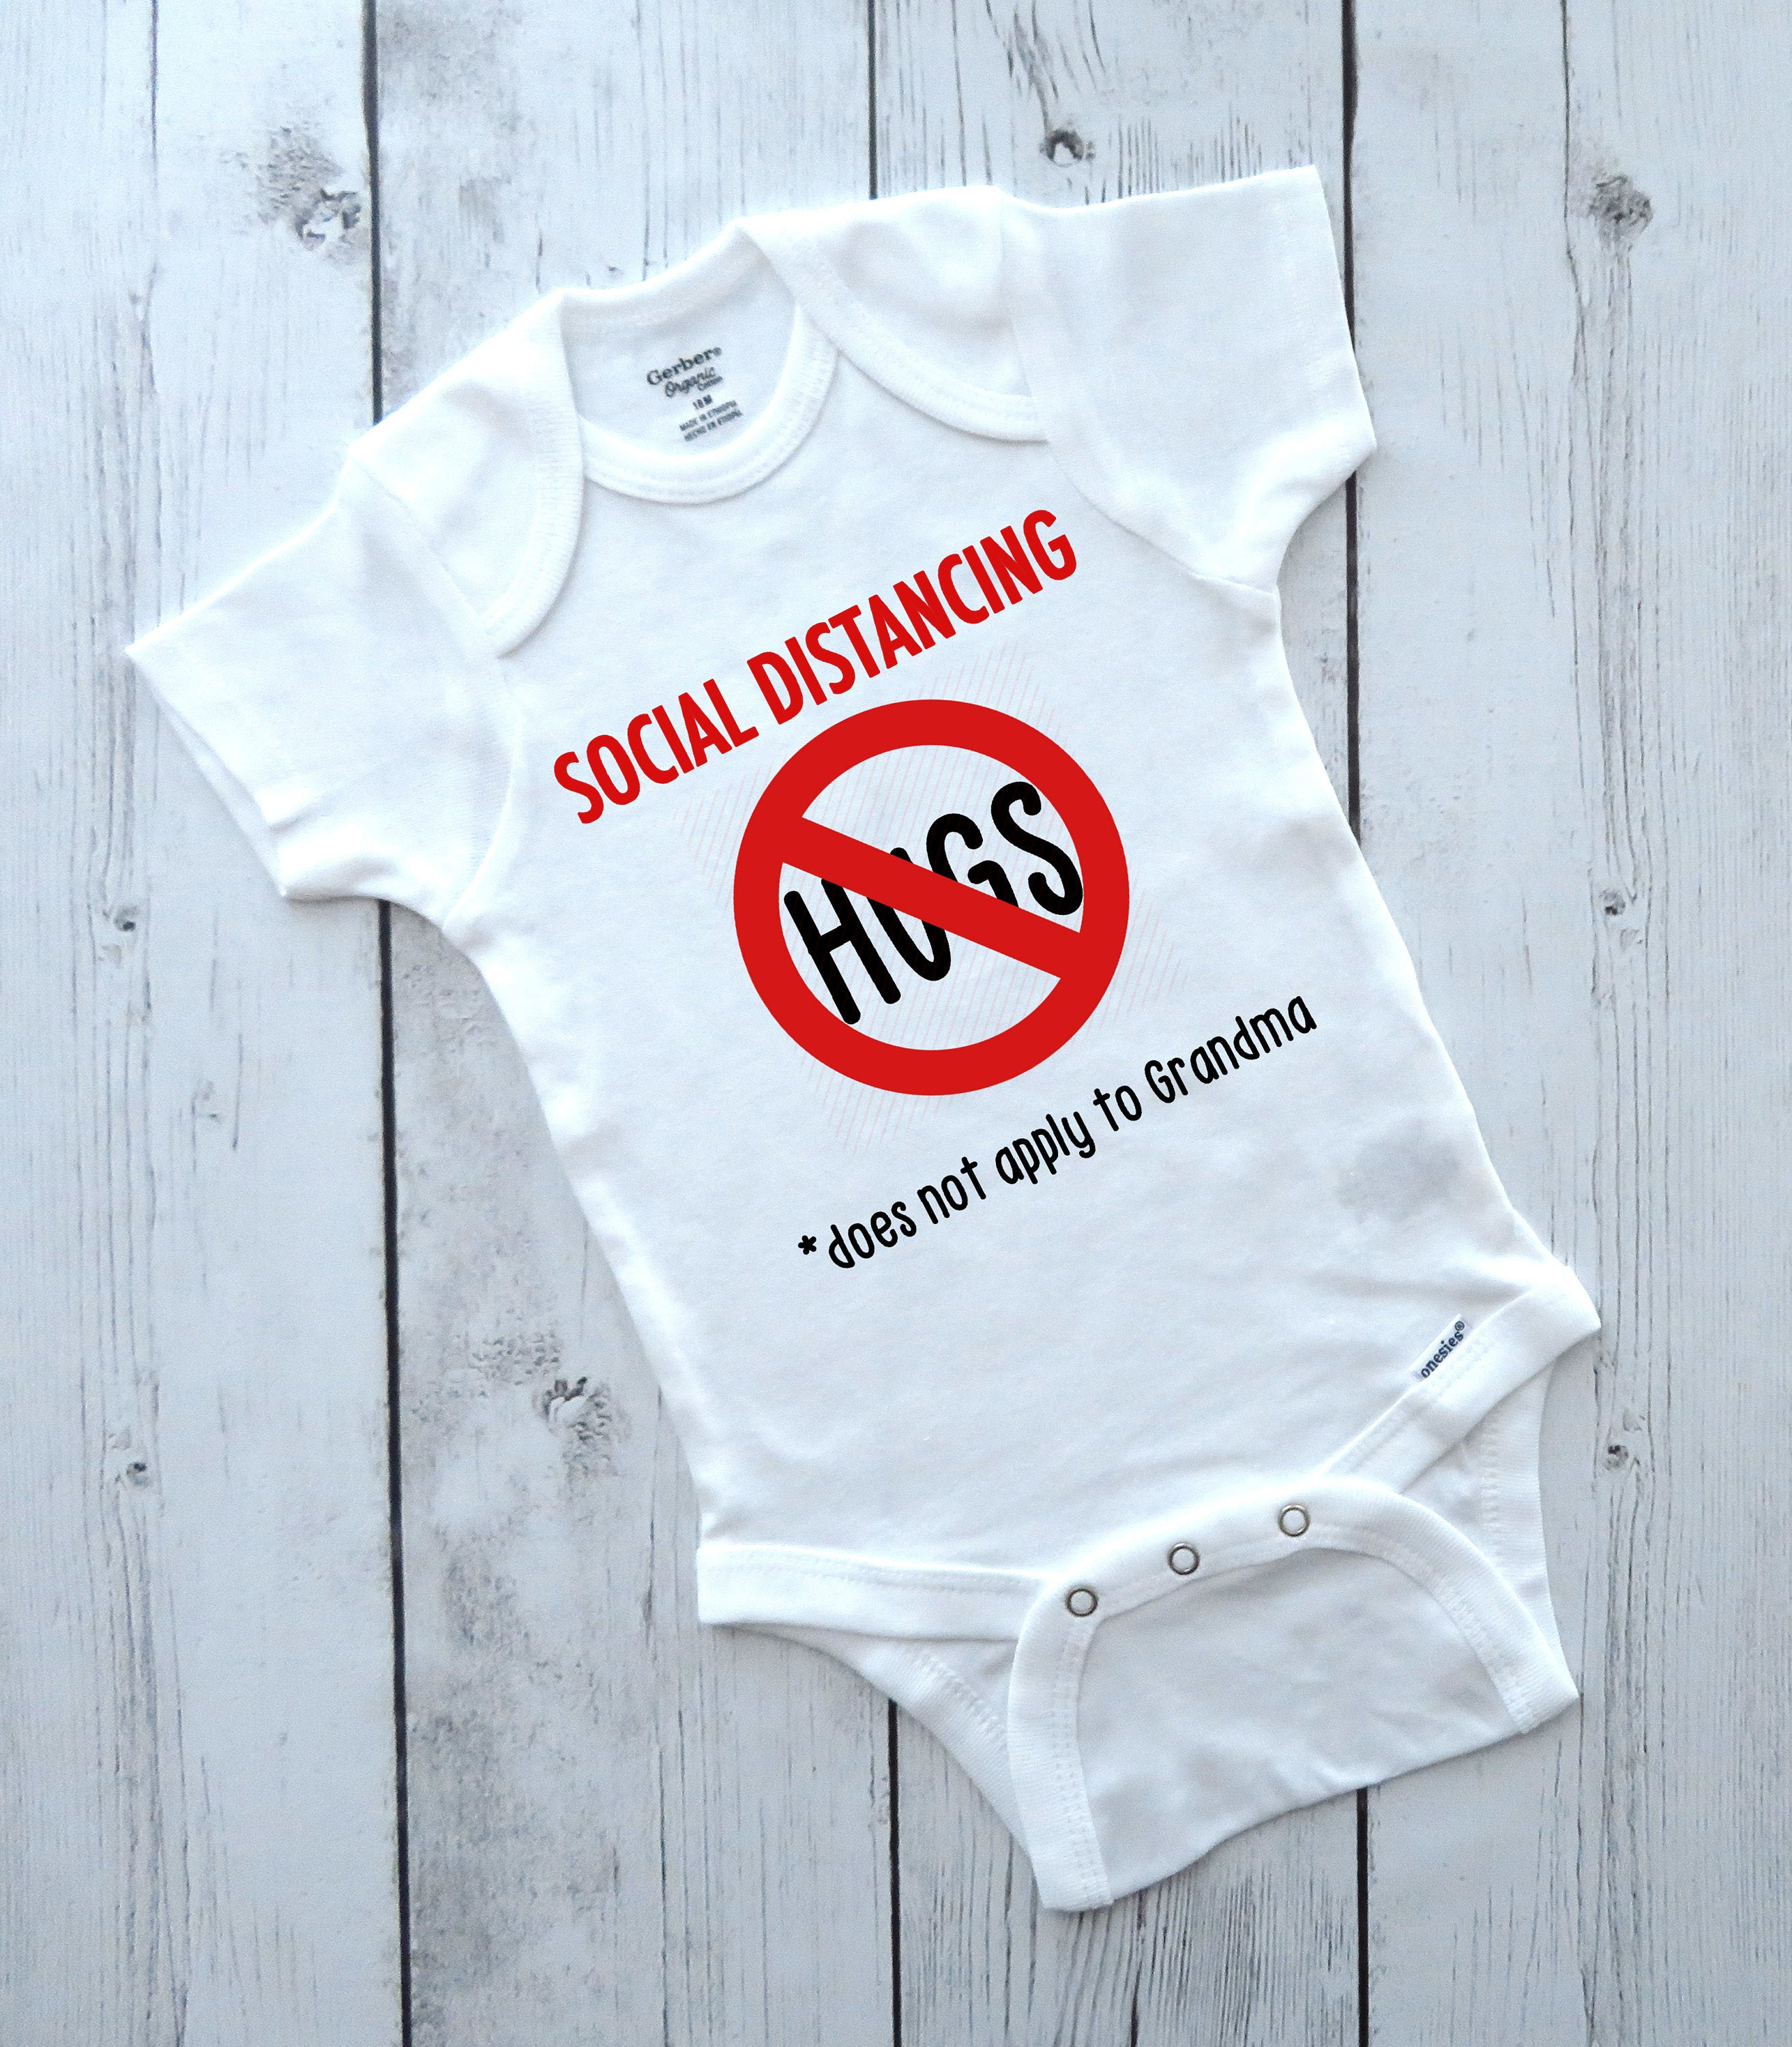 Social Distancing means No Hugs, Does not apply to Grandma - quarantine 2020, funny onesies, baby shower gift, funny baby bodysuits